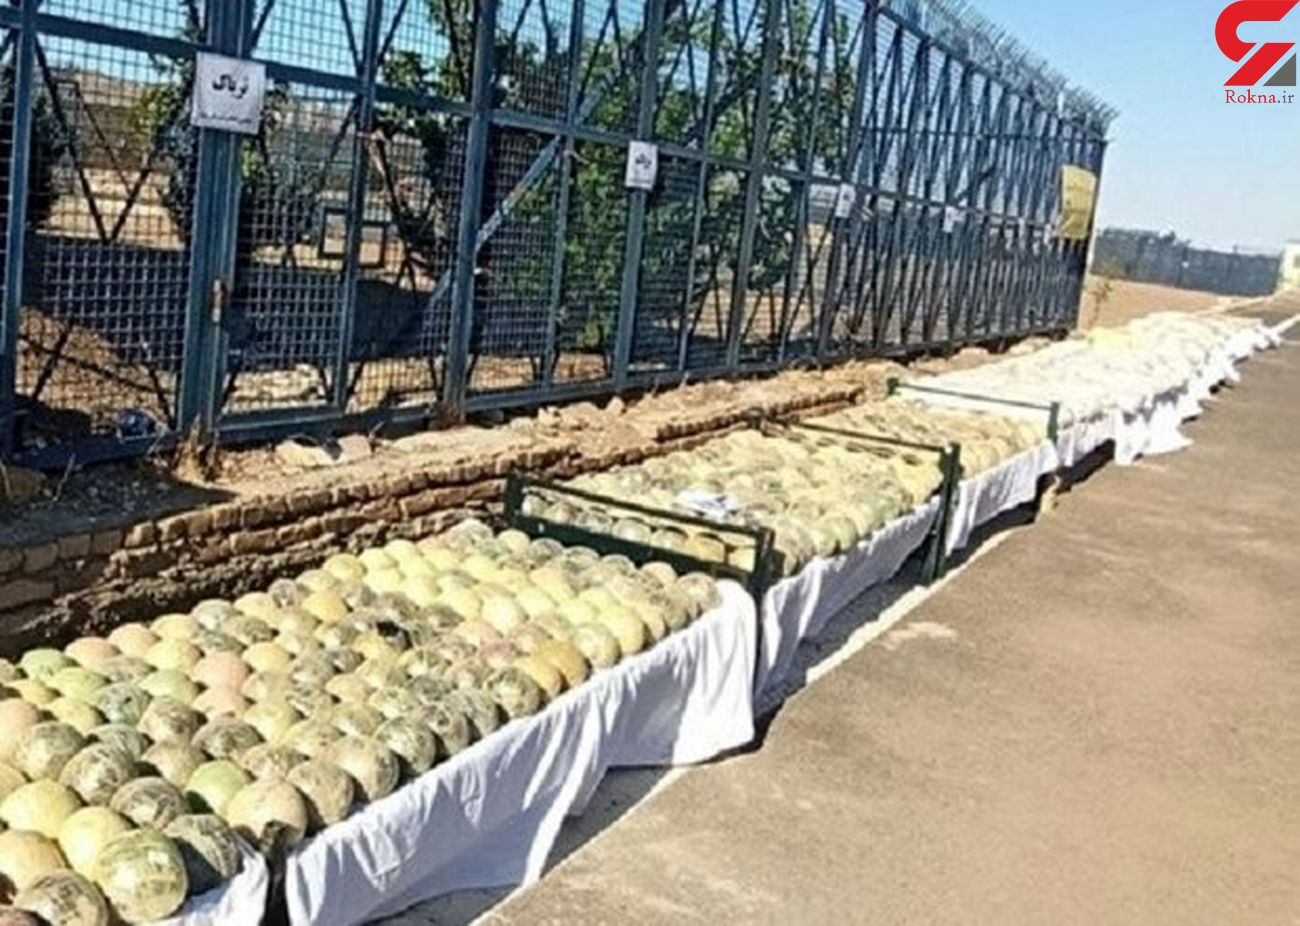 Over 2 tons narcotics confiscated in NE Iran